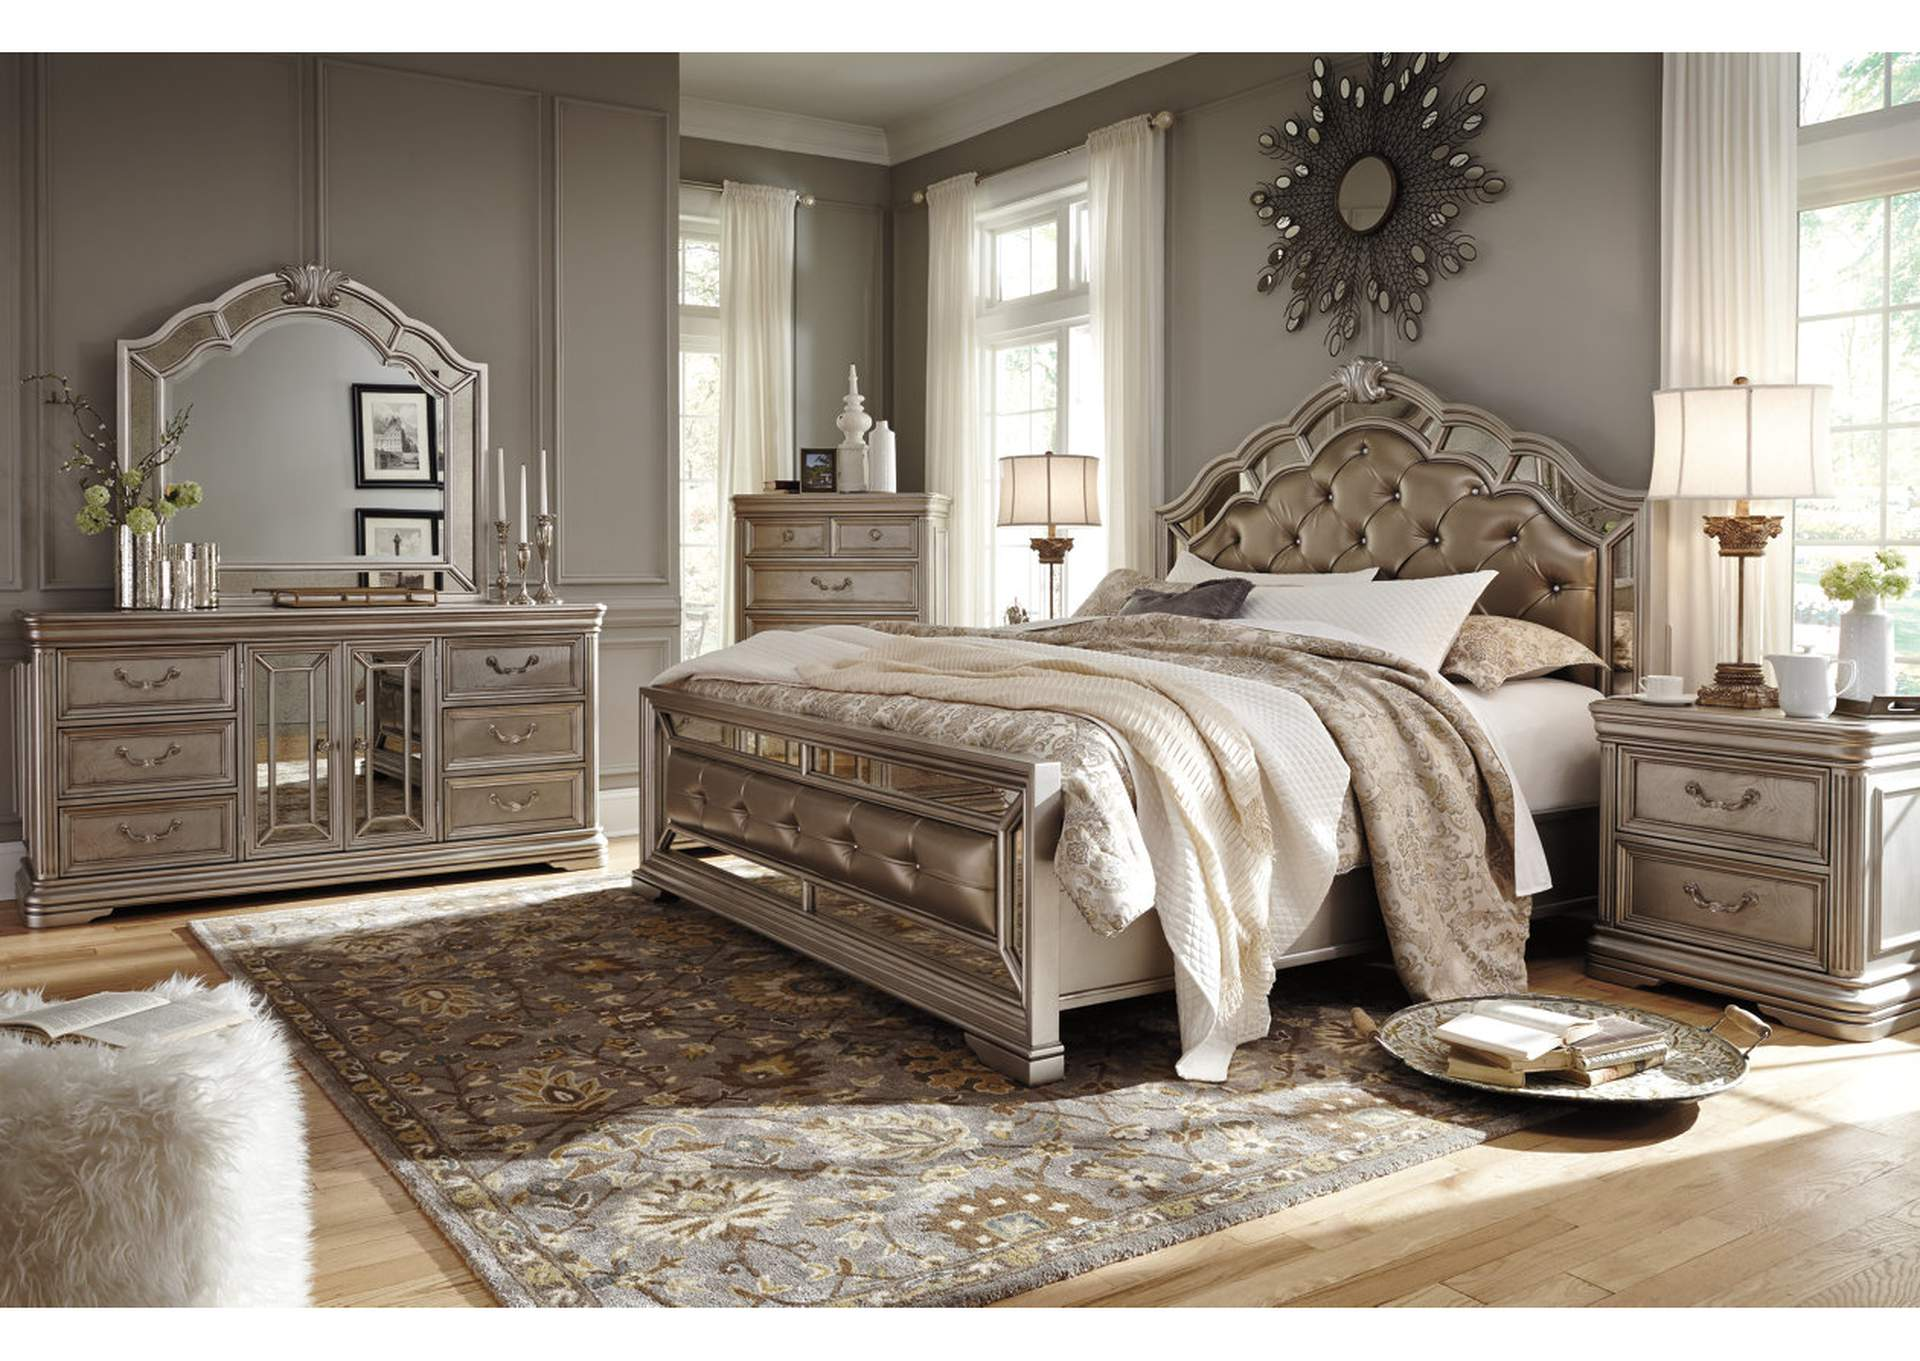 Birlanny Silver Queen Upholstered Bed w/Dresser and Mirror,Signature Design By Ashley